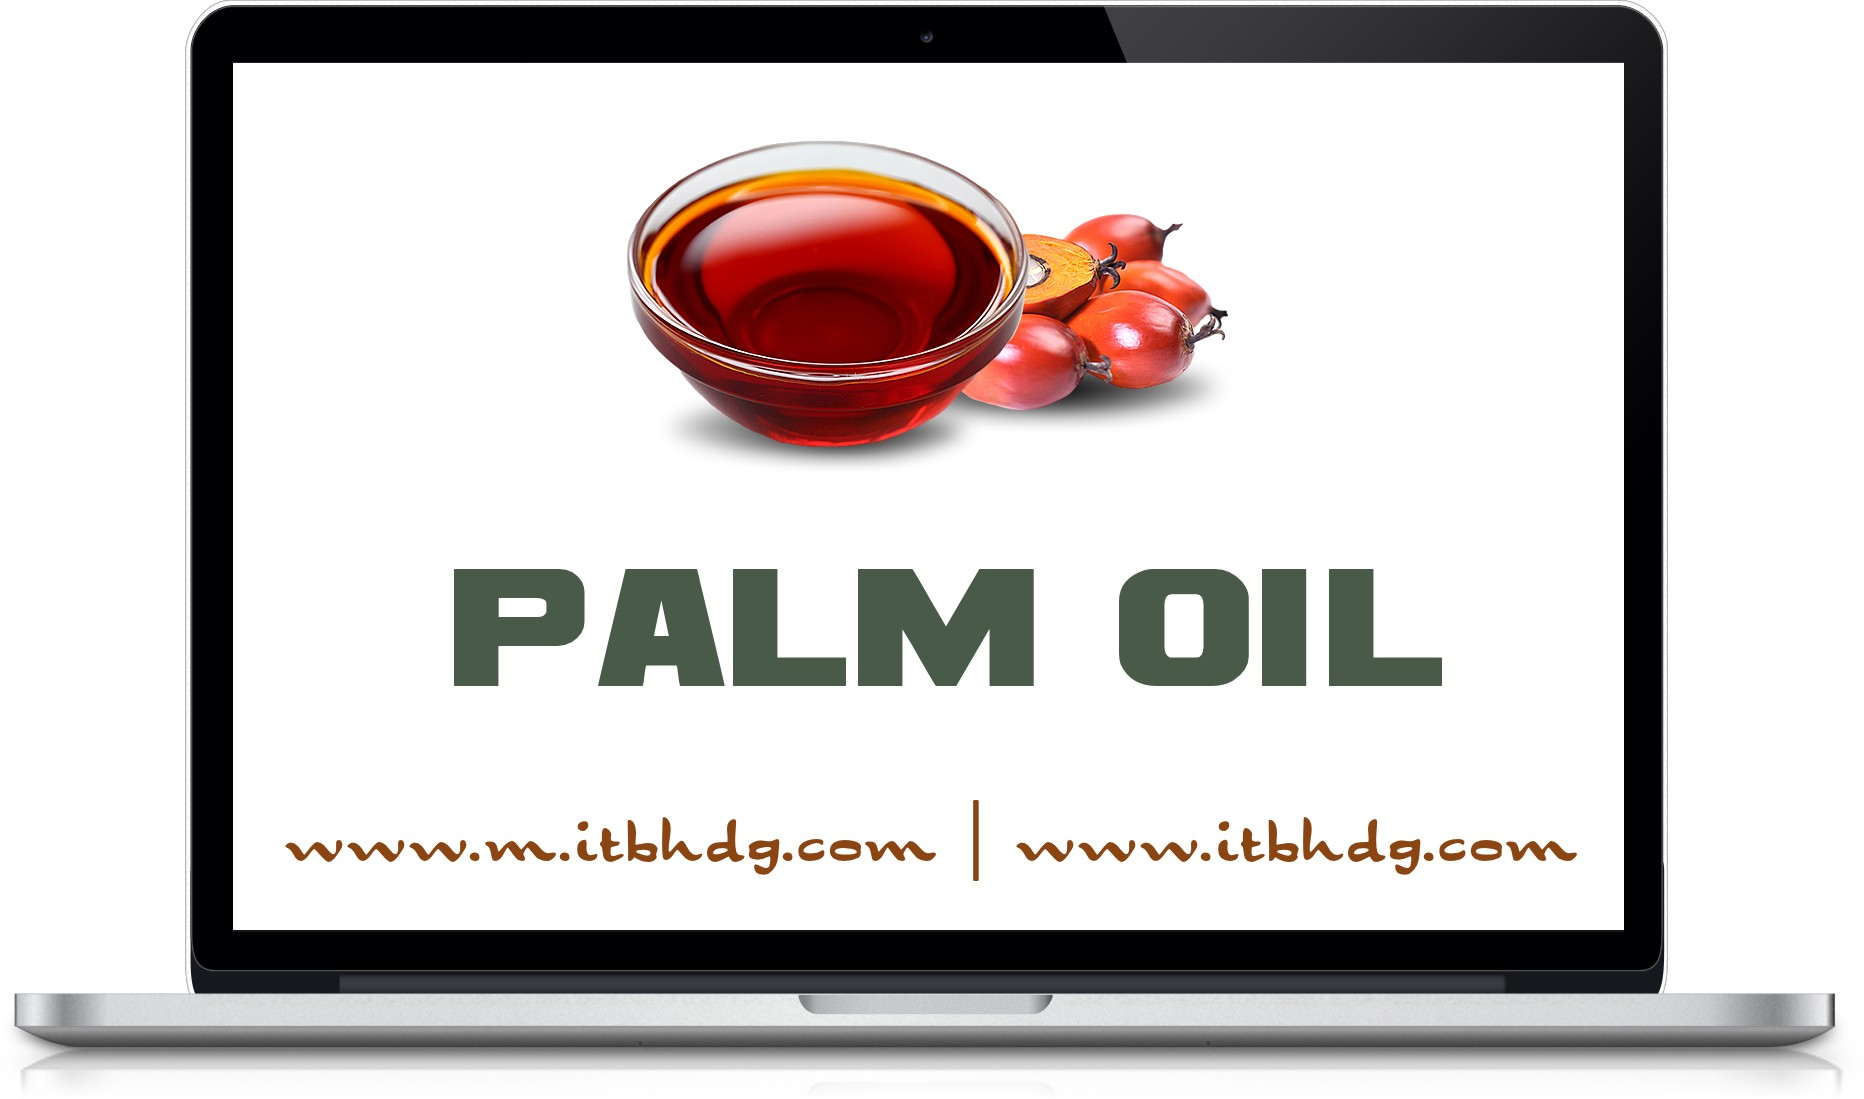 RBD Palm Oil | RBD Palm Olein | RBD Palm Kernel Oil | RBD Palm Stearin | Crude Palm Oil | Best CIF Prices | www.m.itbhdg.com | www.itbhdg.com